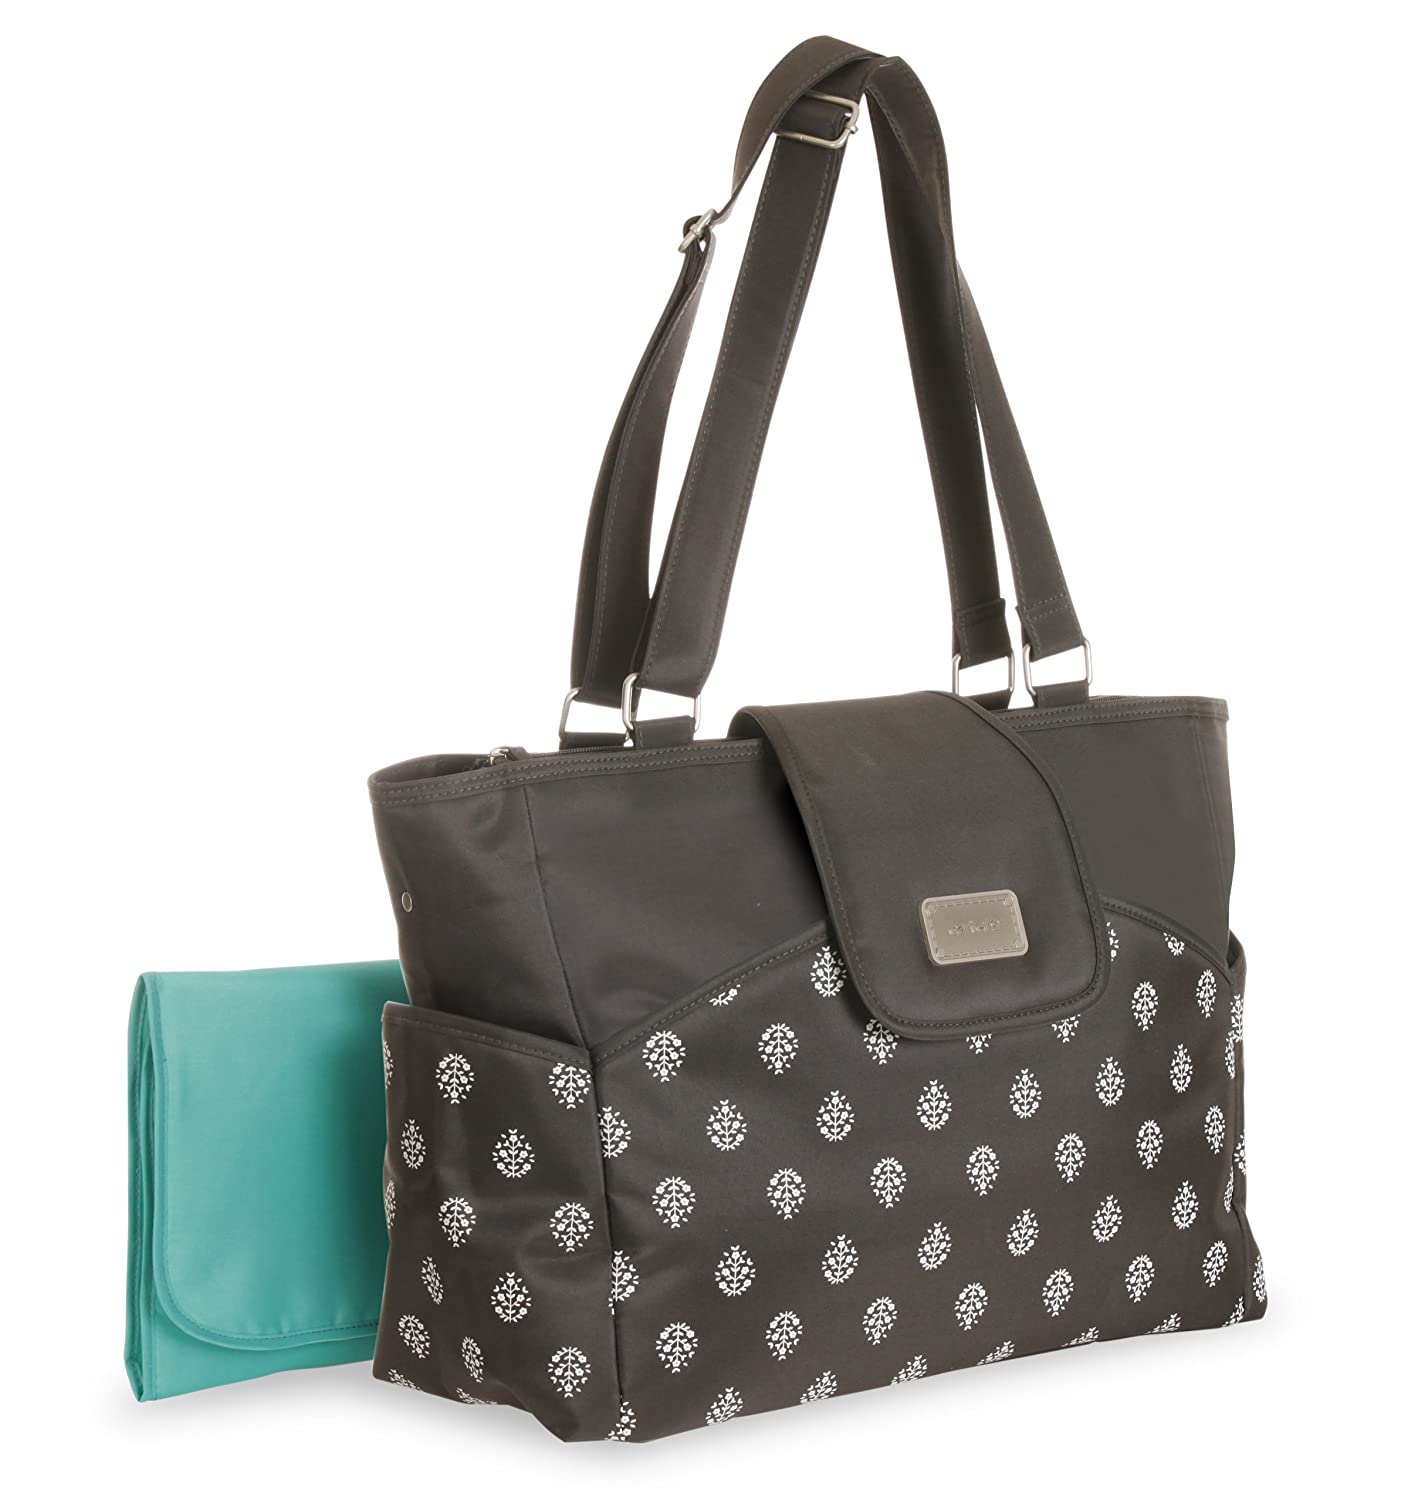 Carter's CA11317 Carry It All Tote Diaper Bag Grey Leaf Print, Black Carter' s